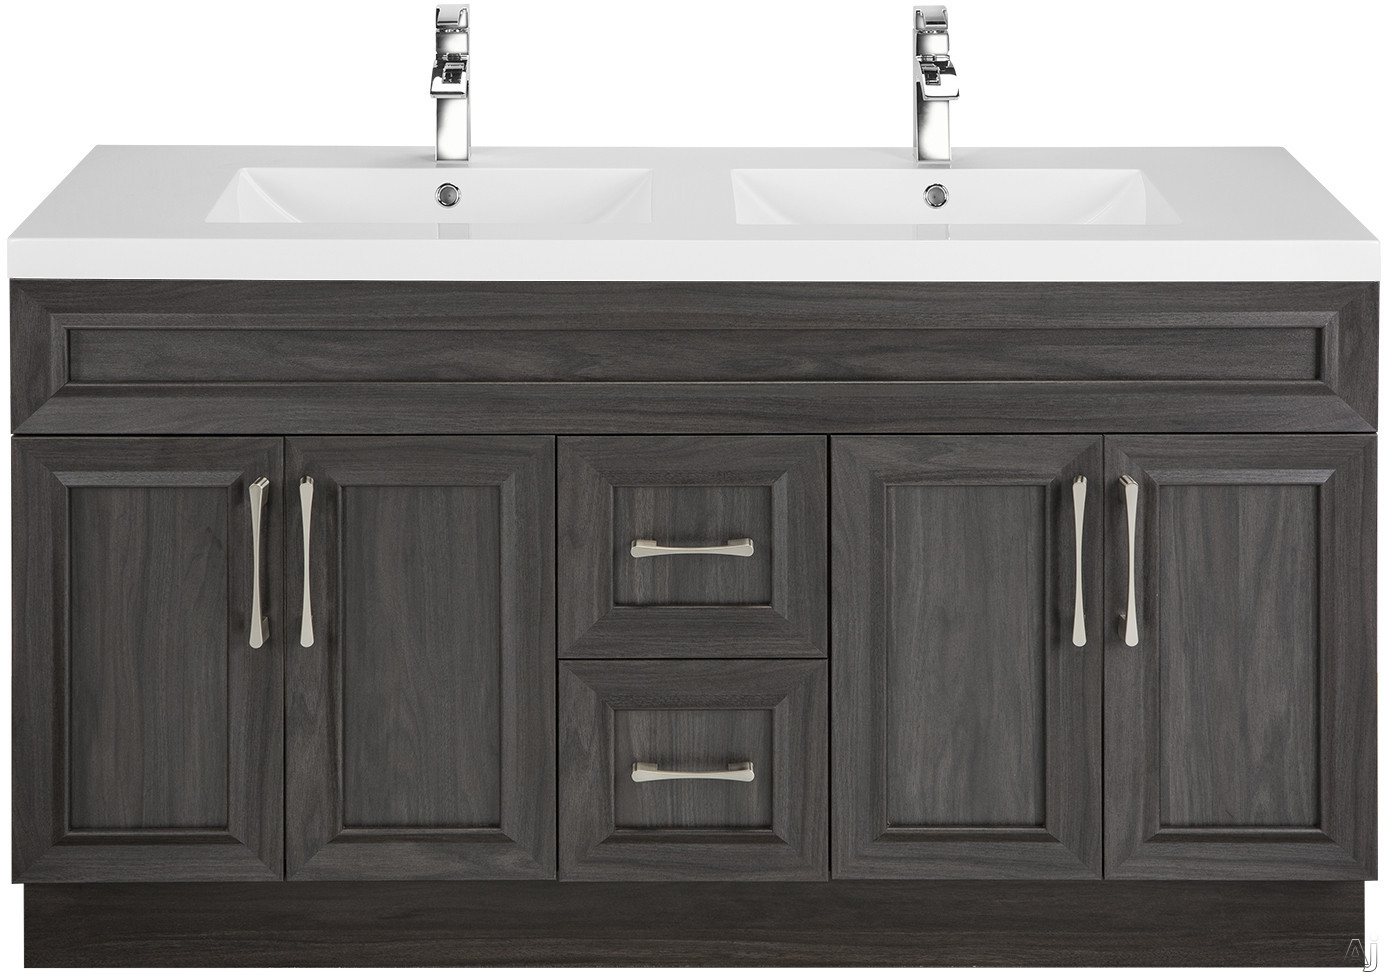 Cutler Kitchen & Bath Classic CCKATR60DBT 60 Inch Freestanding Double Bowl Vanity with 2 Soft Close Drawers, Countertop and Sink and Handles Included